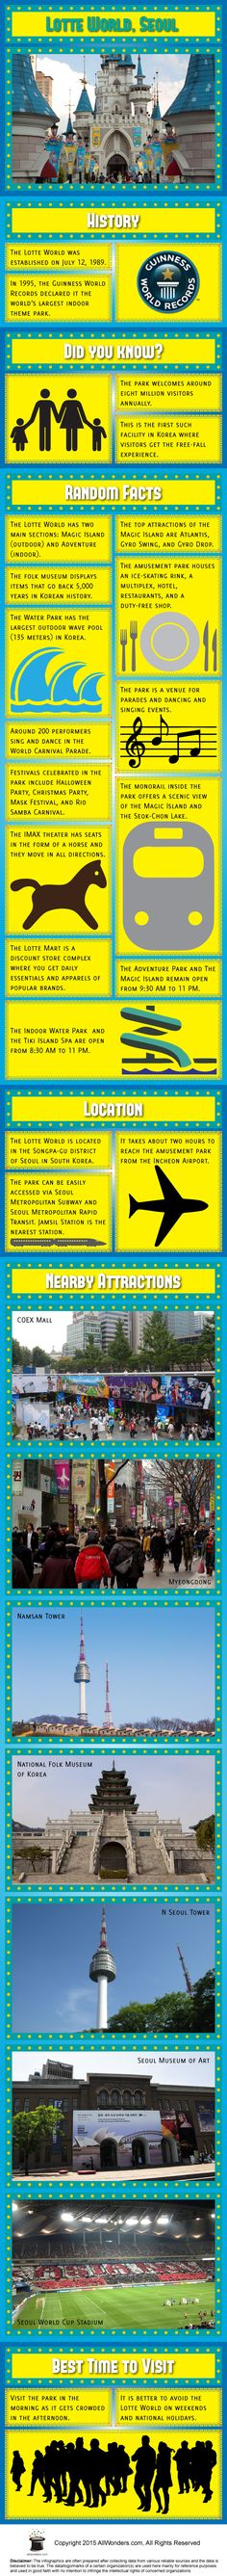 Lotte World Infographic